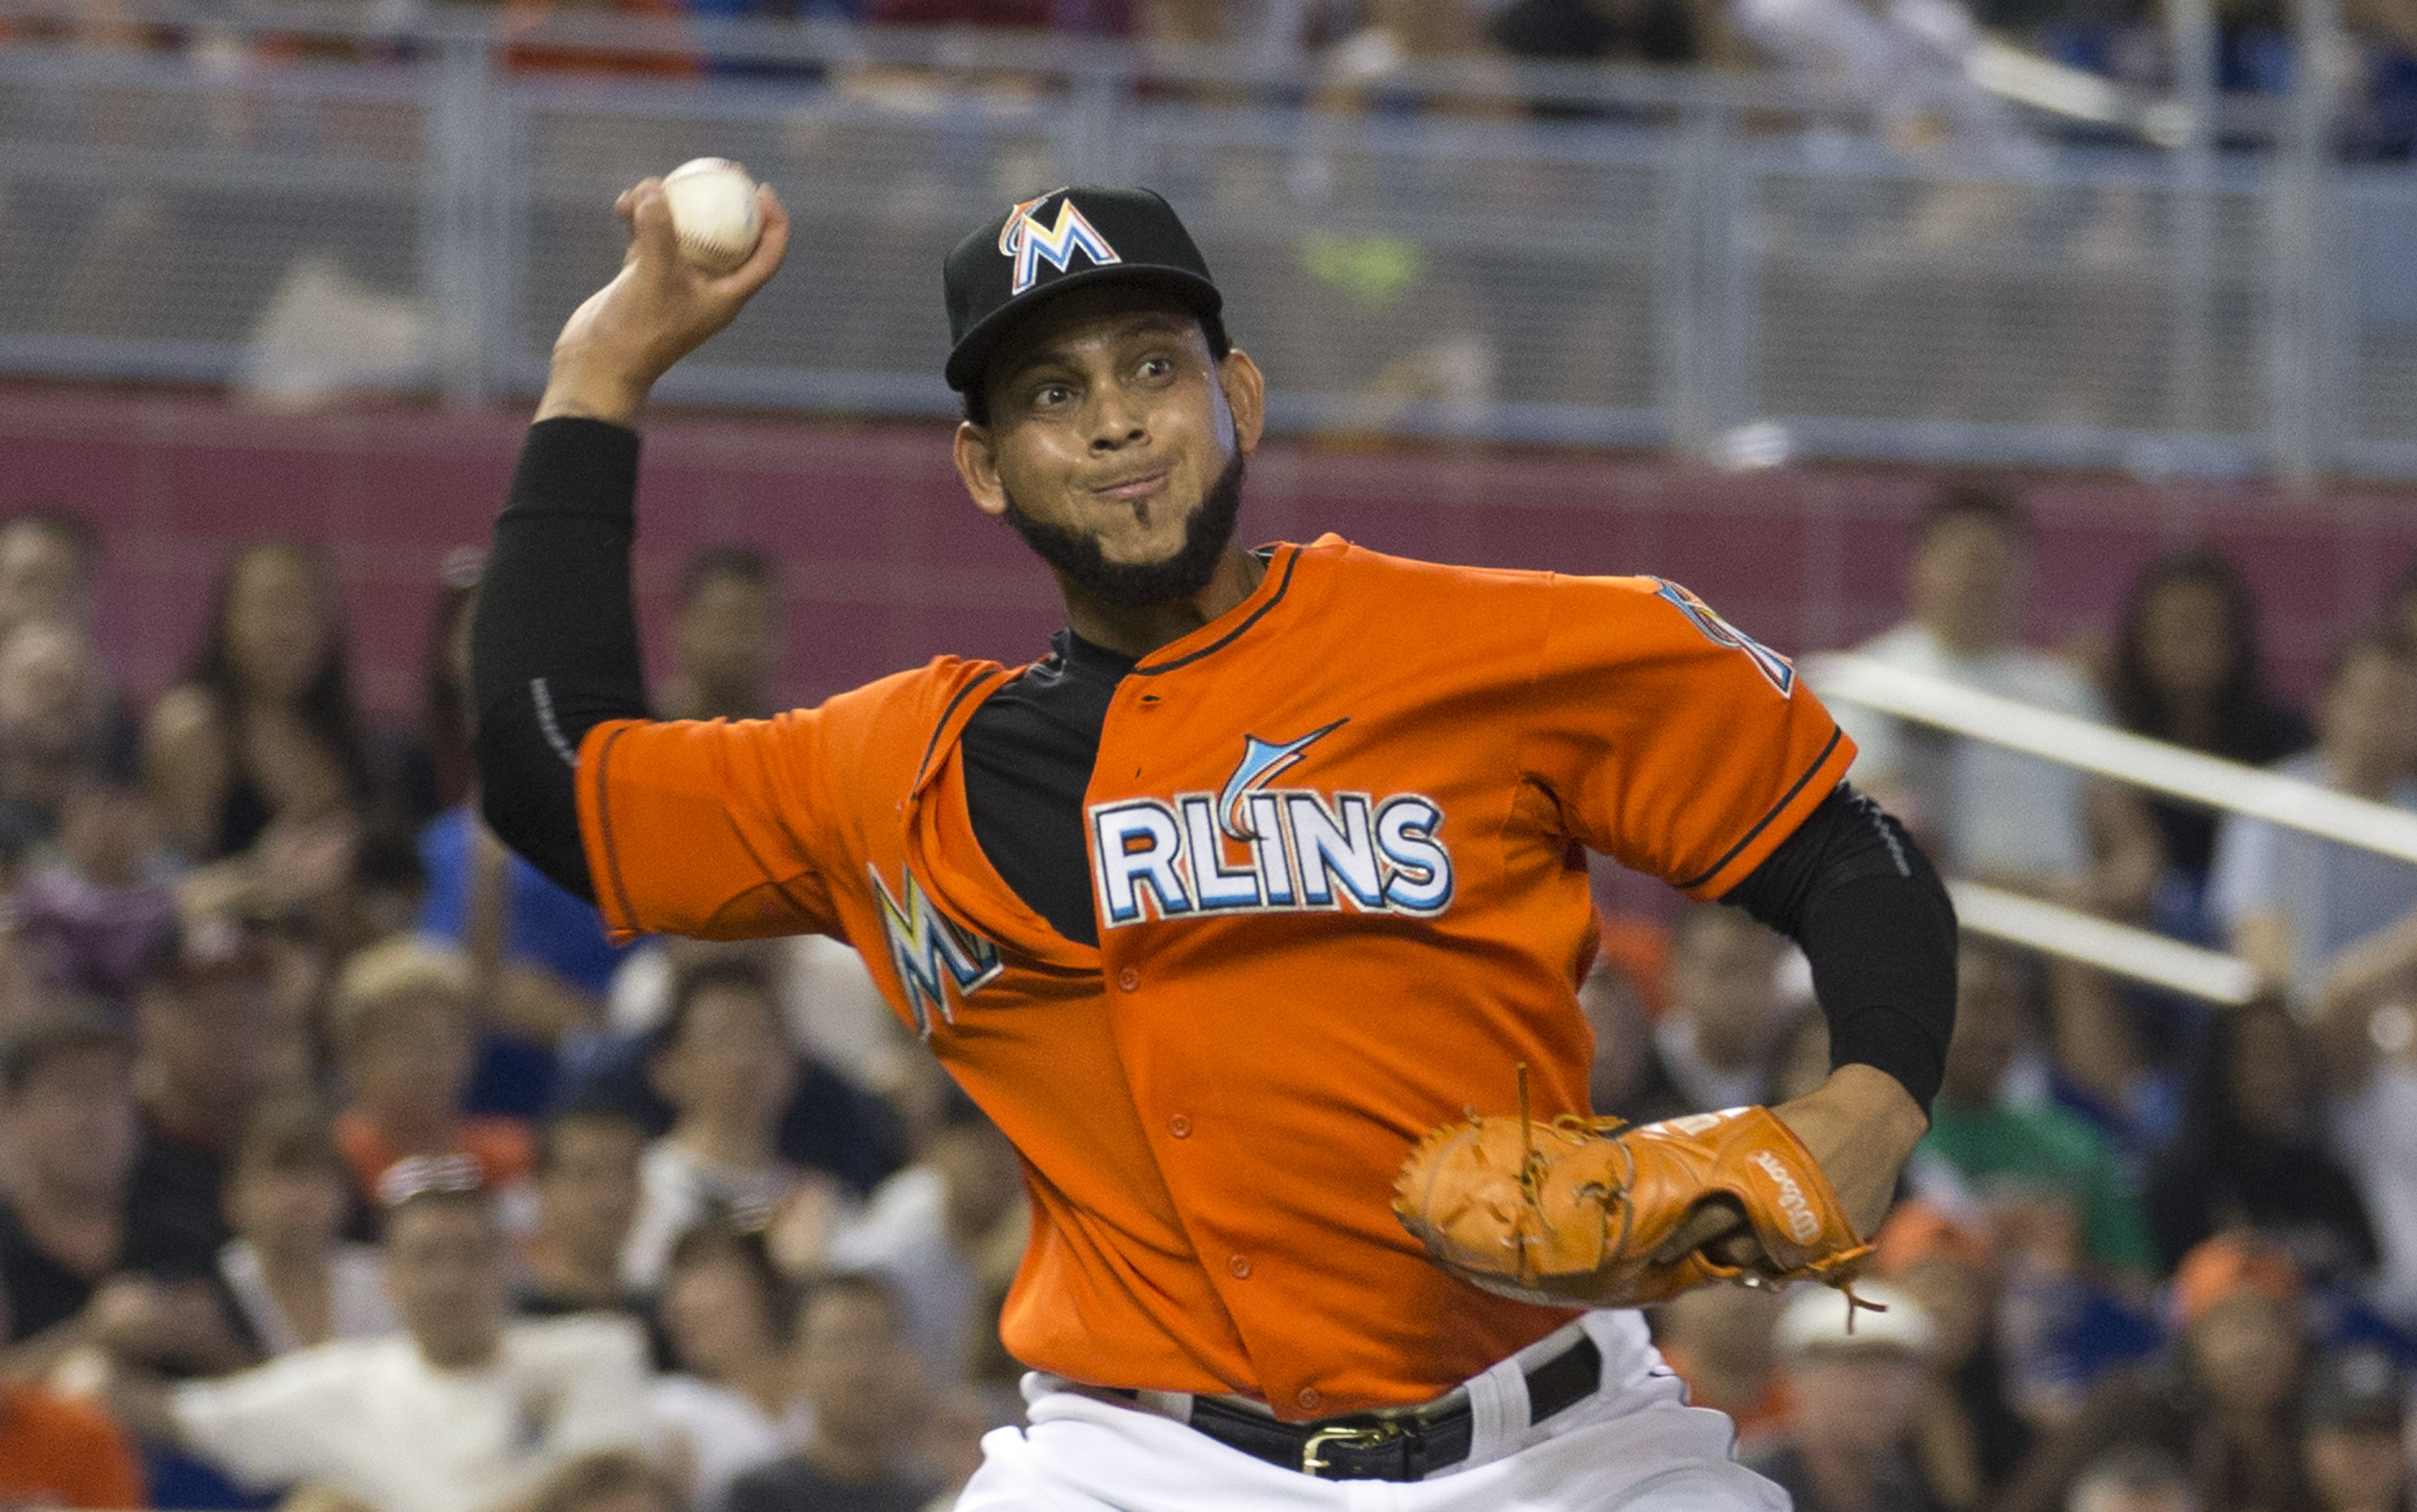 Miami Marlins starting pitcher Henderson Alvarez tries to make a play at first base after being hit by and then dropping the ball during the second inning of a baseball game against the Atlanta Braves in Miami, Sunday, May 17, 2015. (AP Photo/J Pat Carter